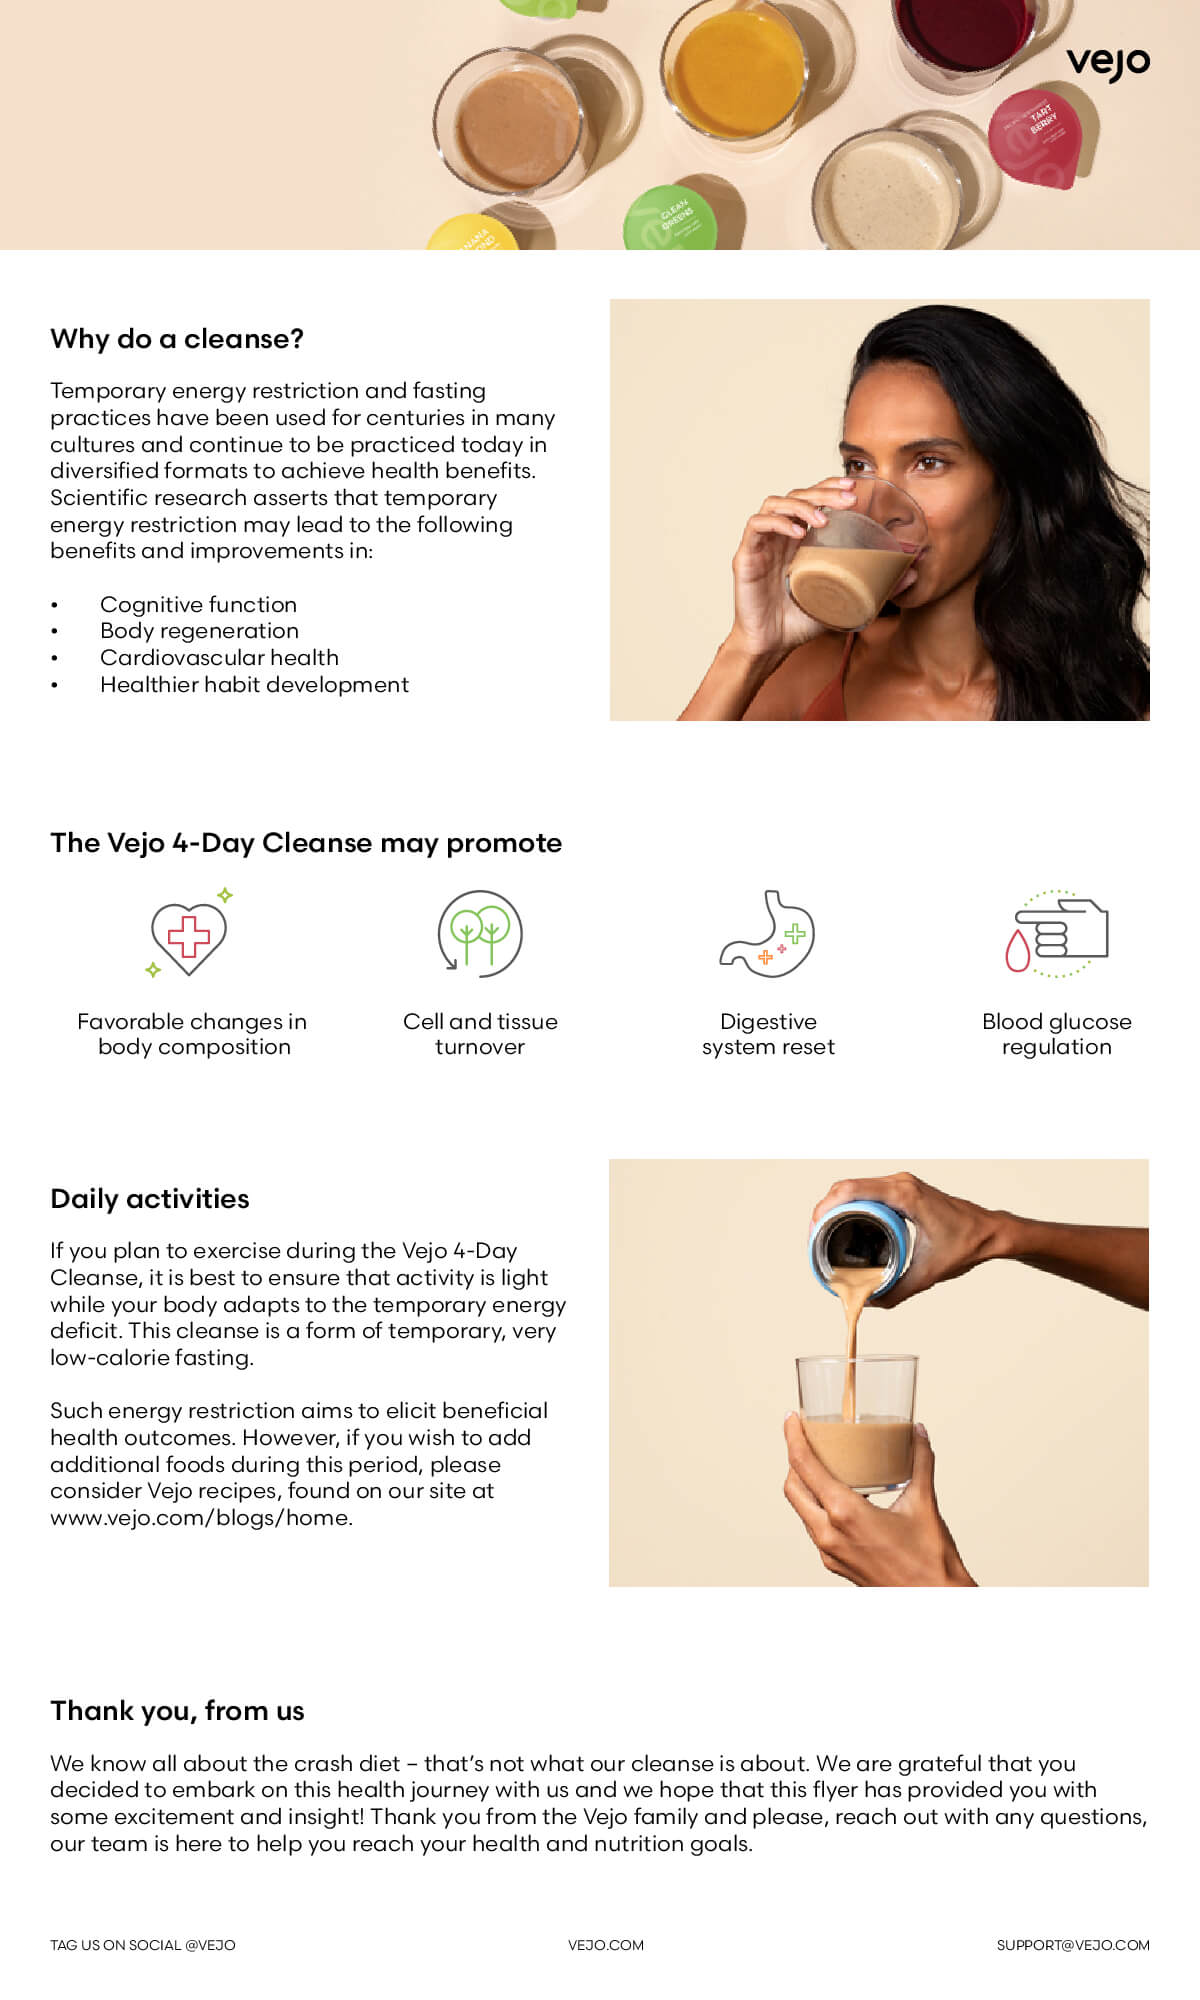 Why do a cleanse?